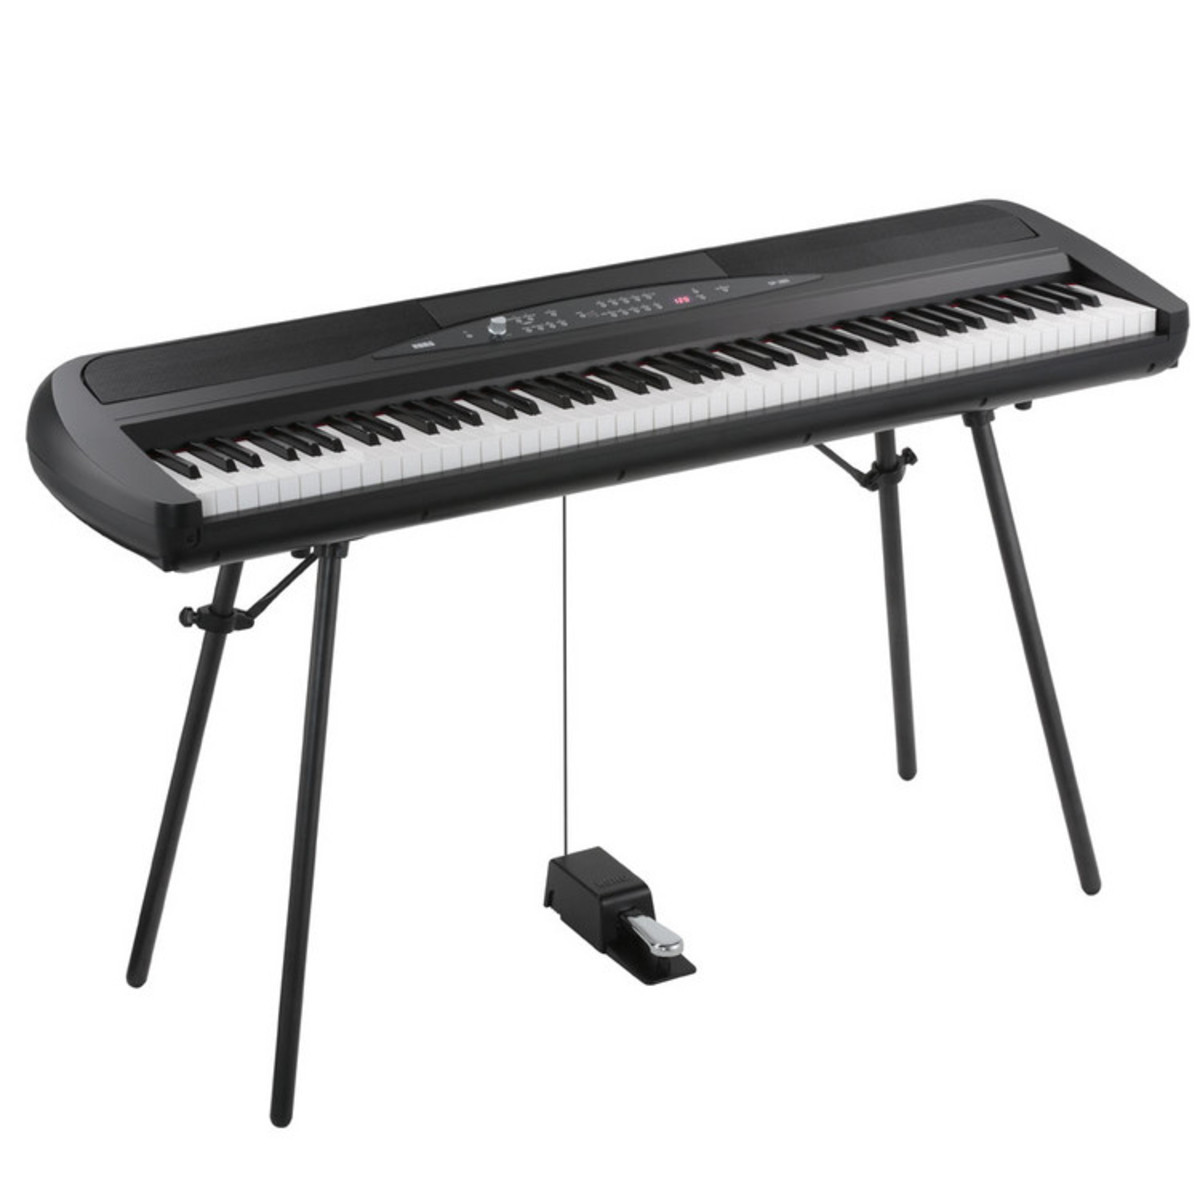 Image of Korg SP-280 Digital Stage Piano Black